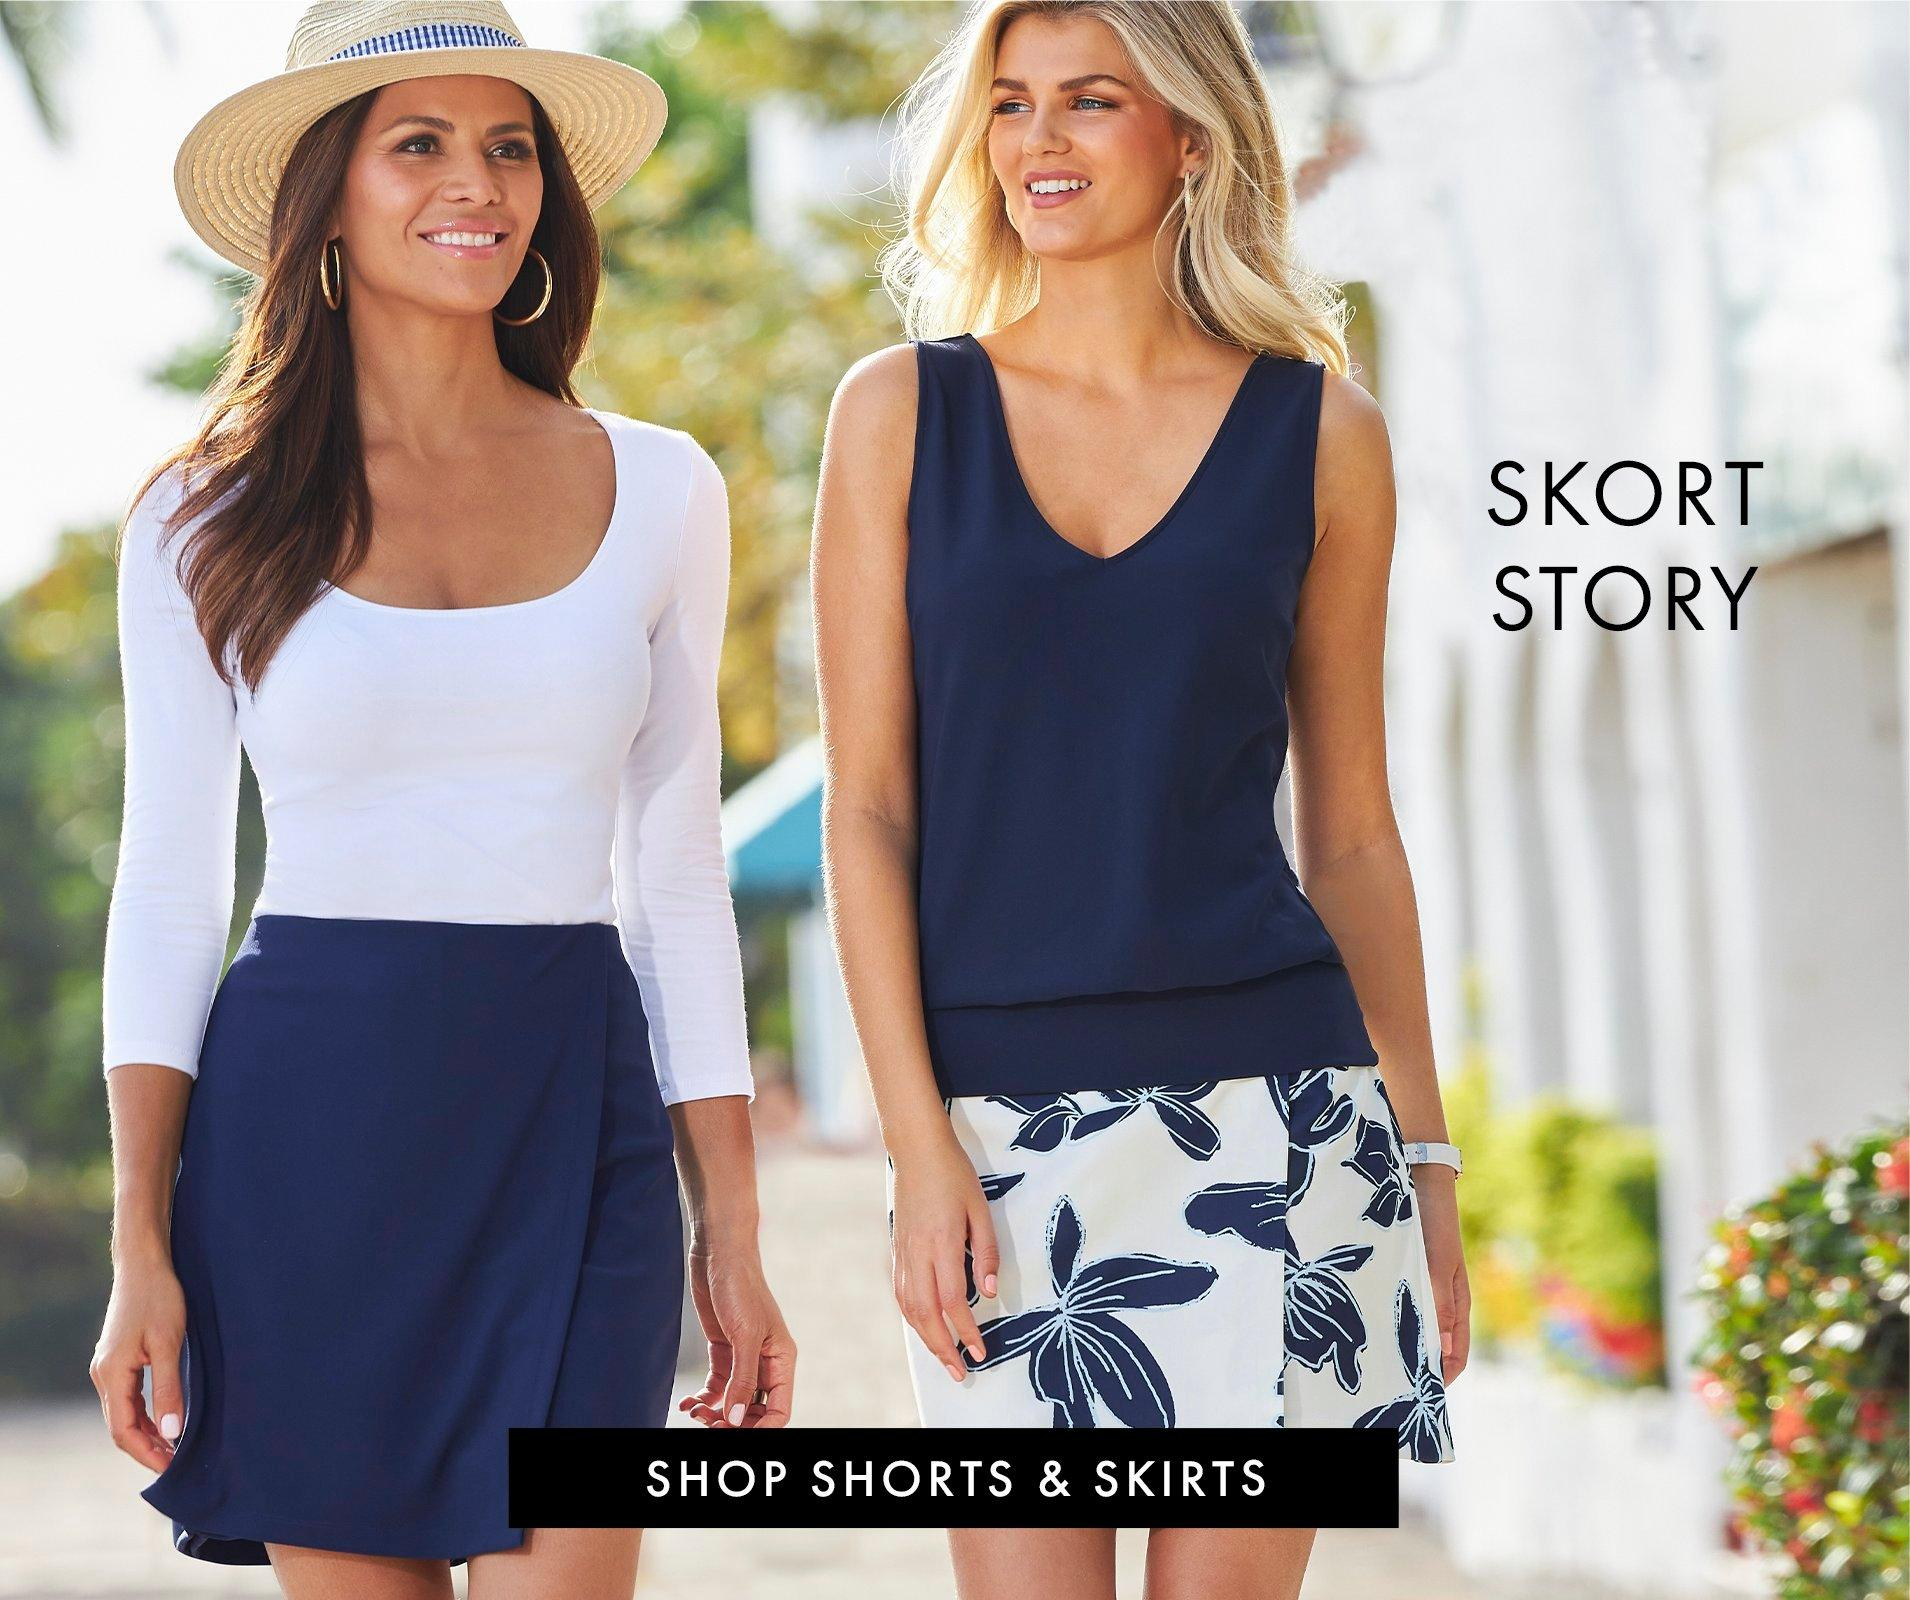 Left model wearing a white three-quarter sleeve top, navy skort, and straw hat. right model wearing a navy sleeveless blouson top and a blue and white floral print skort.